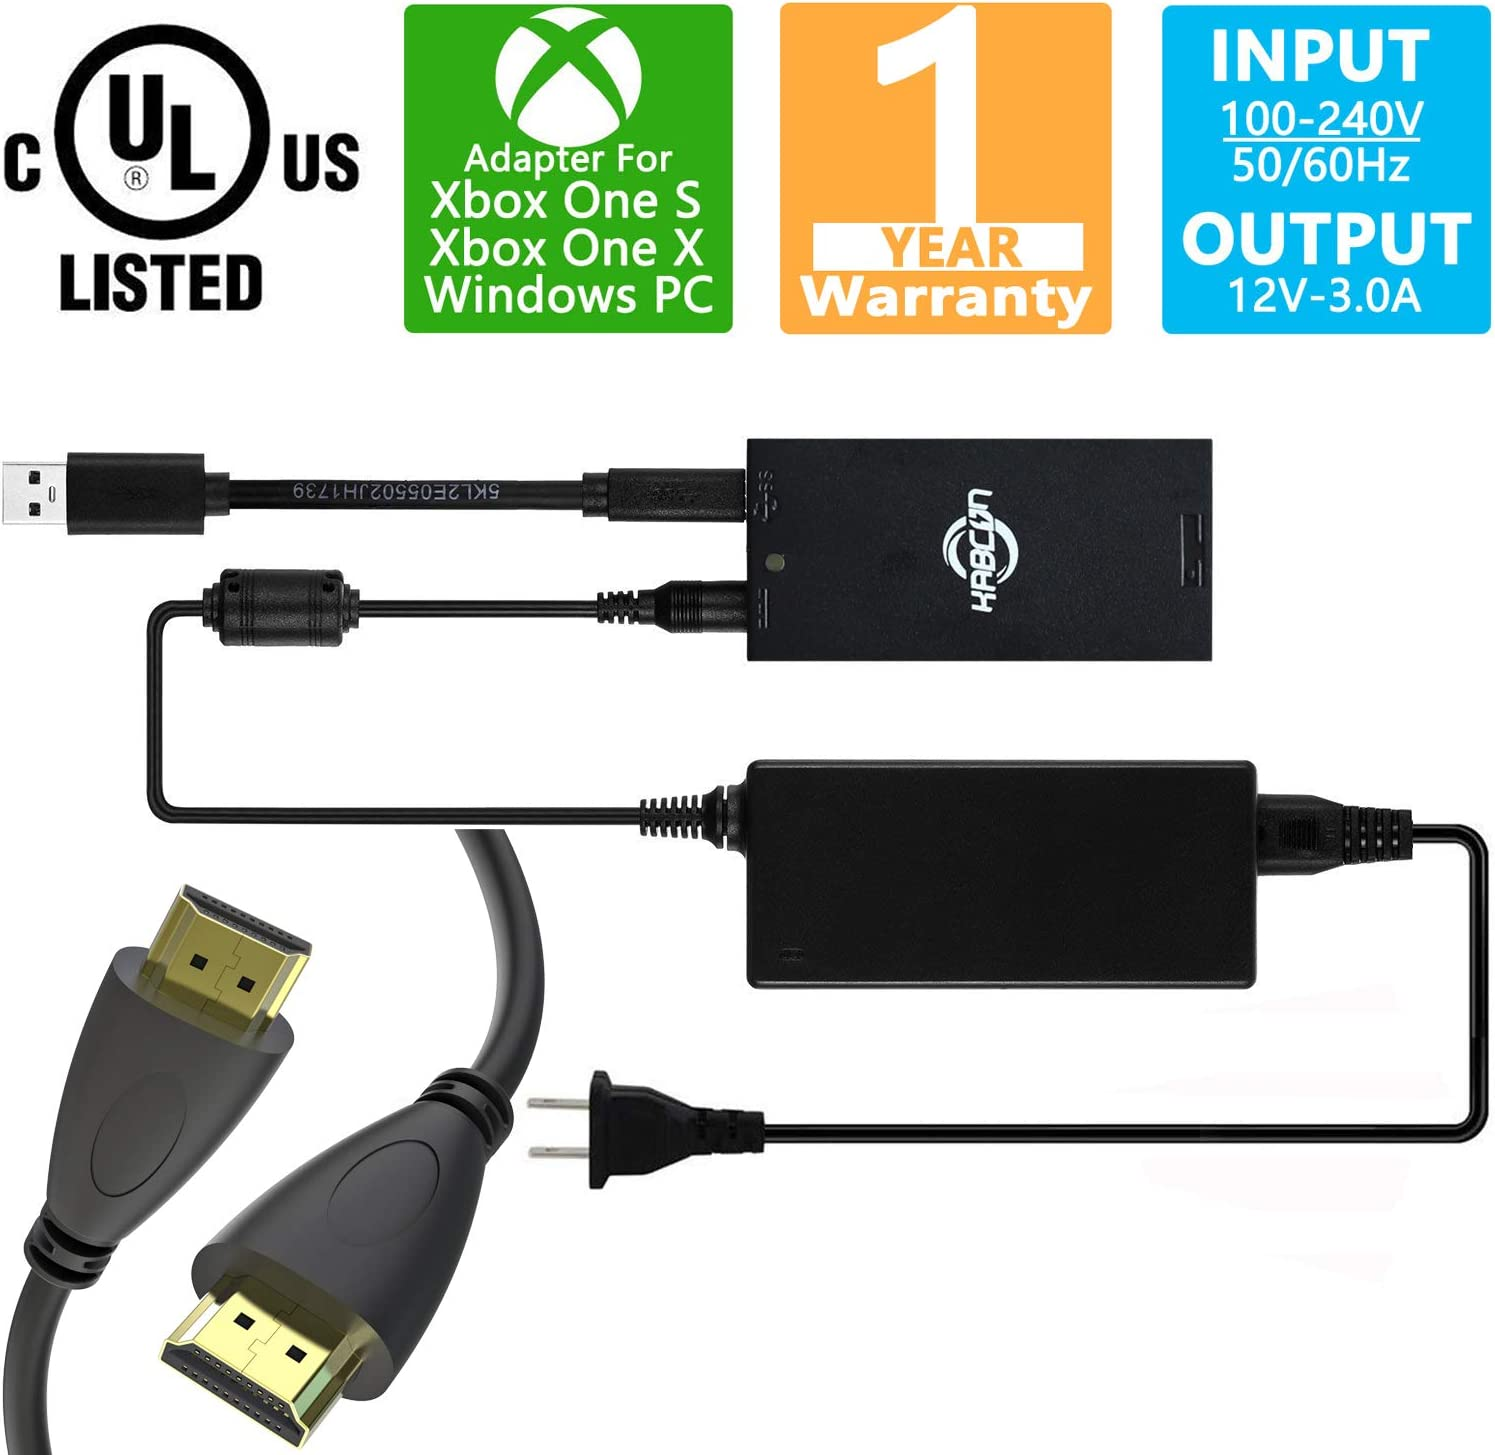 Amazon com: Kinect Adapter for Xbox One S/Xbox One X/Windows PC, [UL